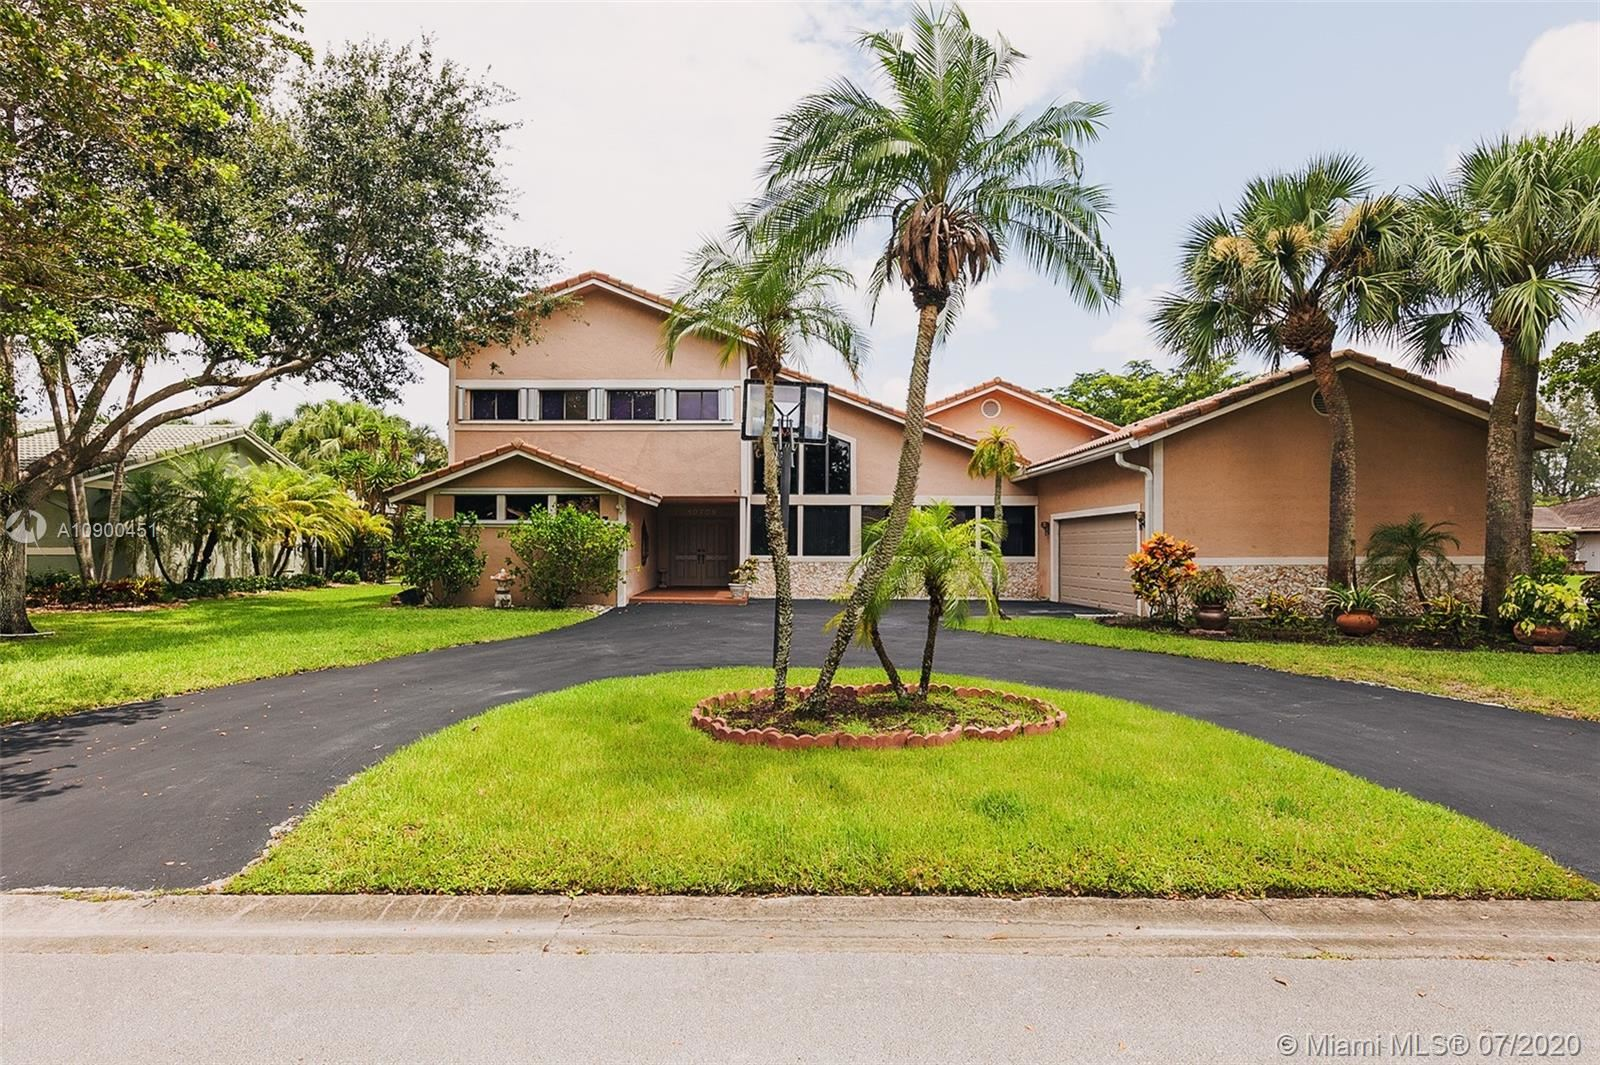 10709 NW 19th Place, Coral Springs, FL 33071 - #: A10900451